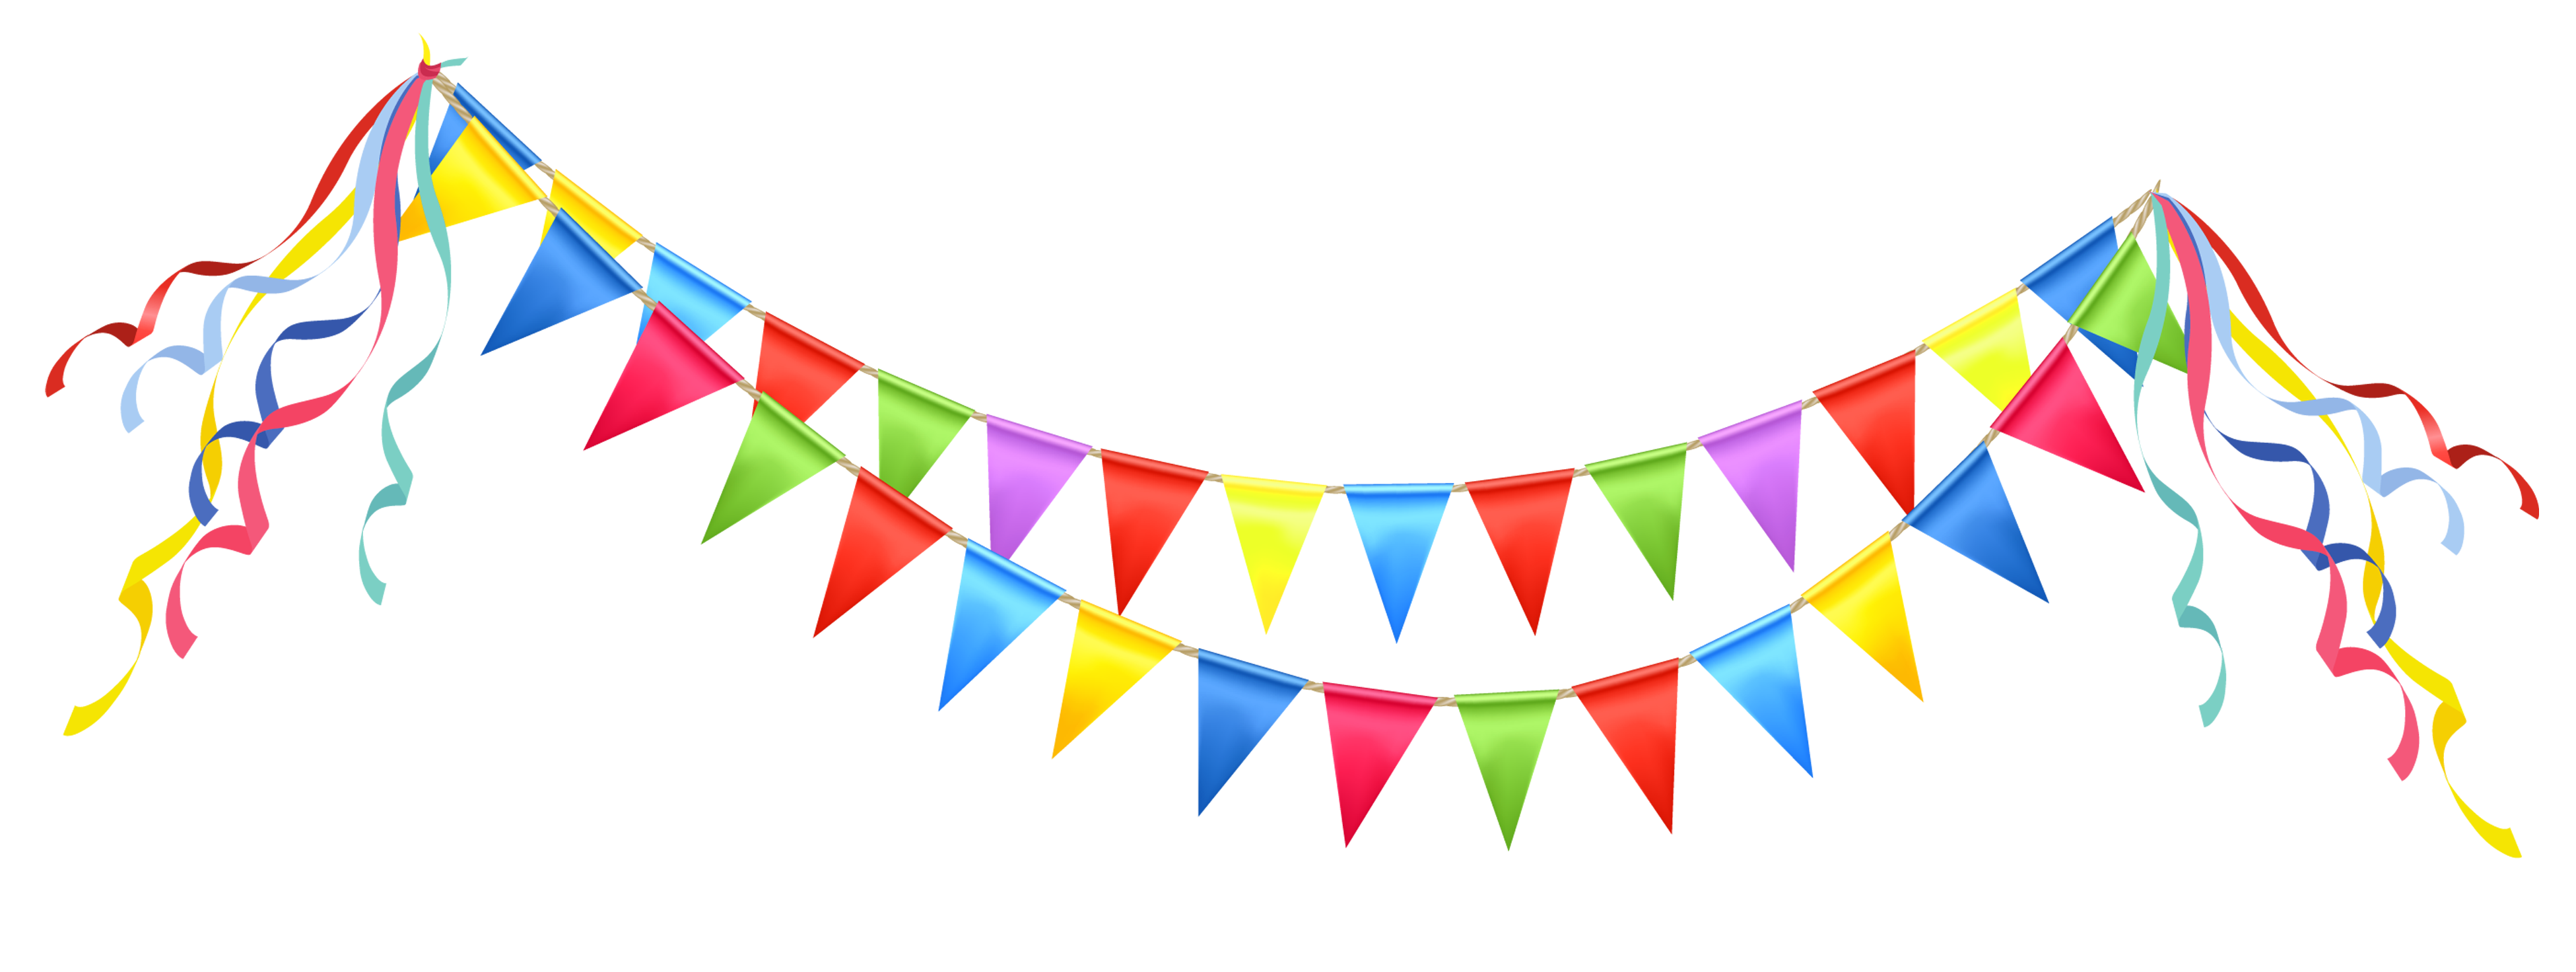 party banners png